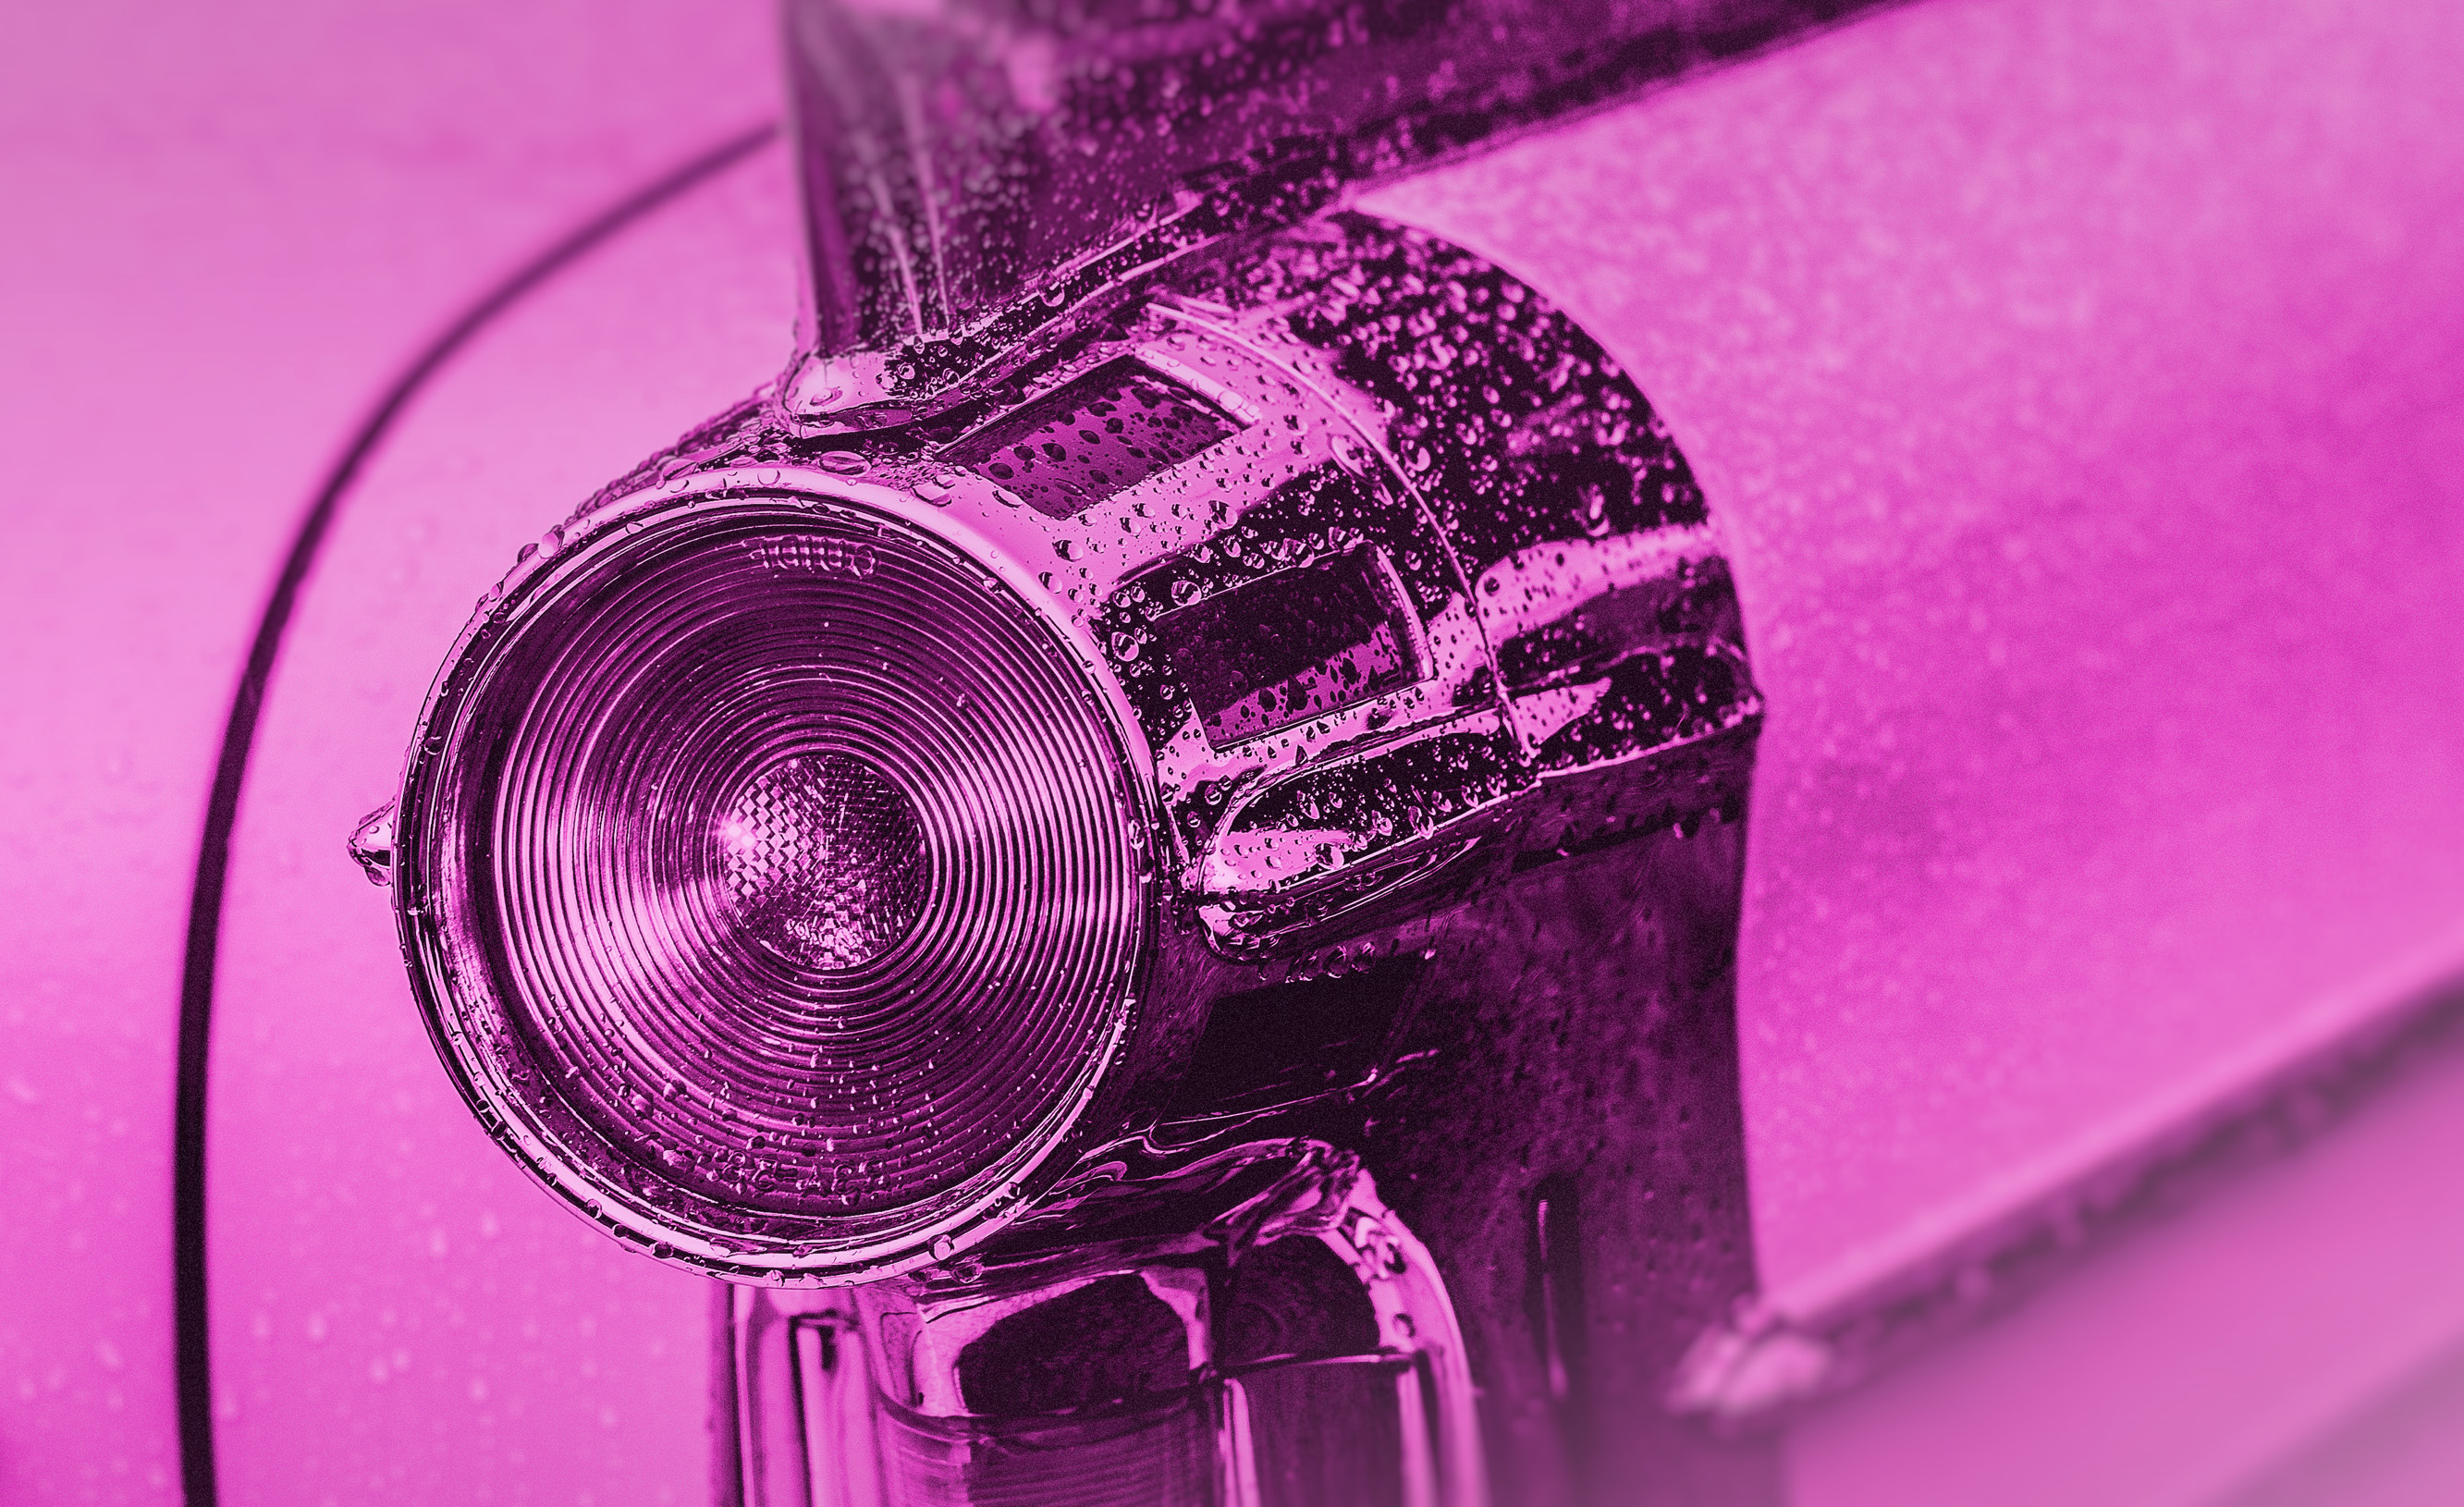 Tail light - fifties classic car - colorized photo